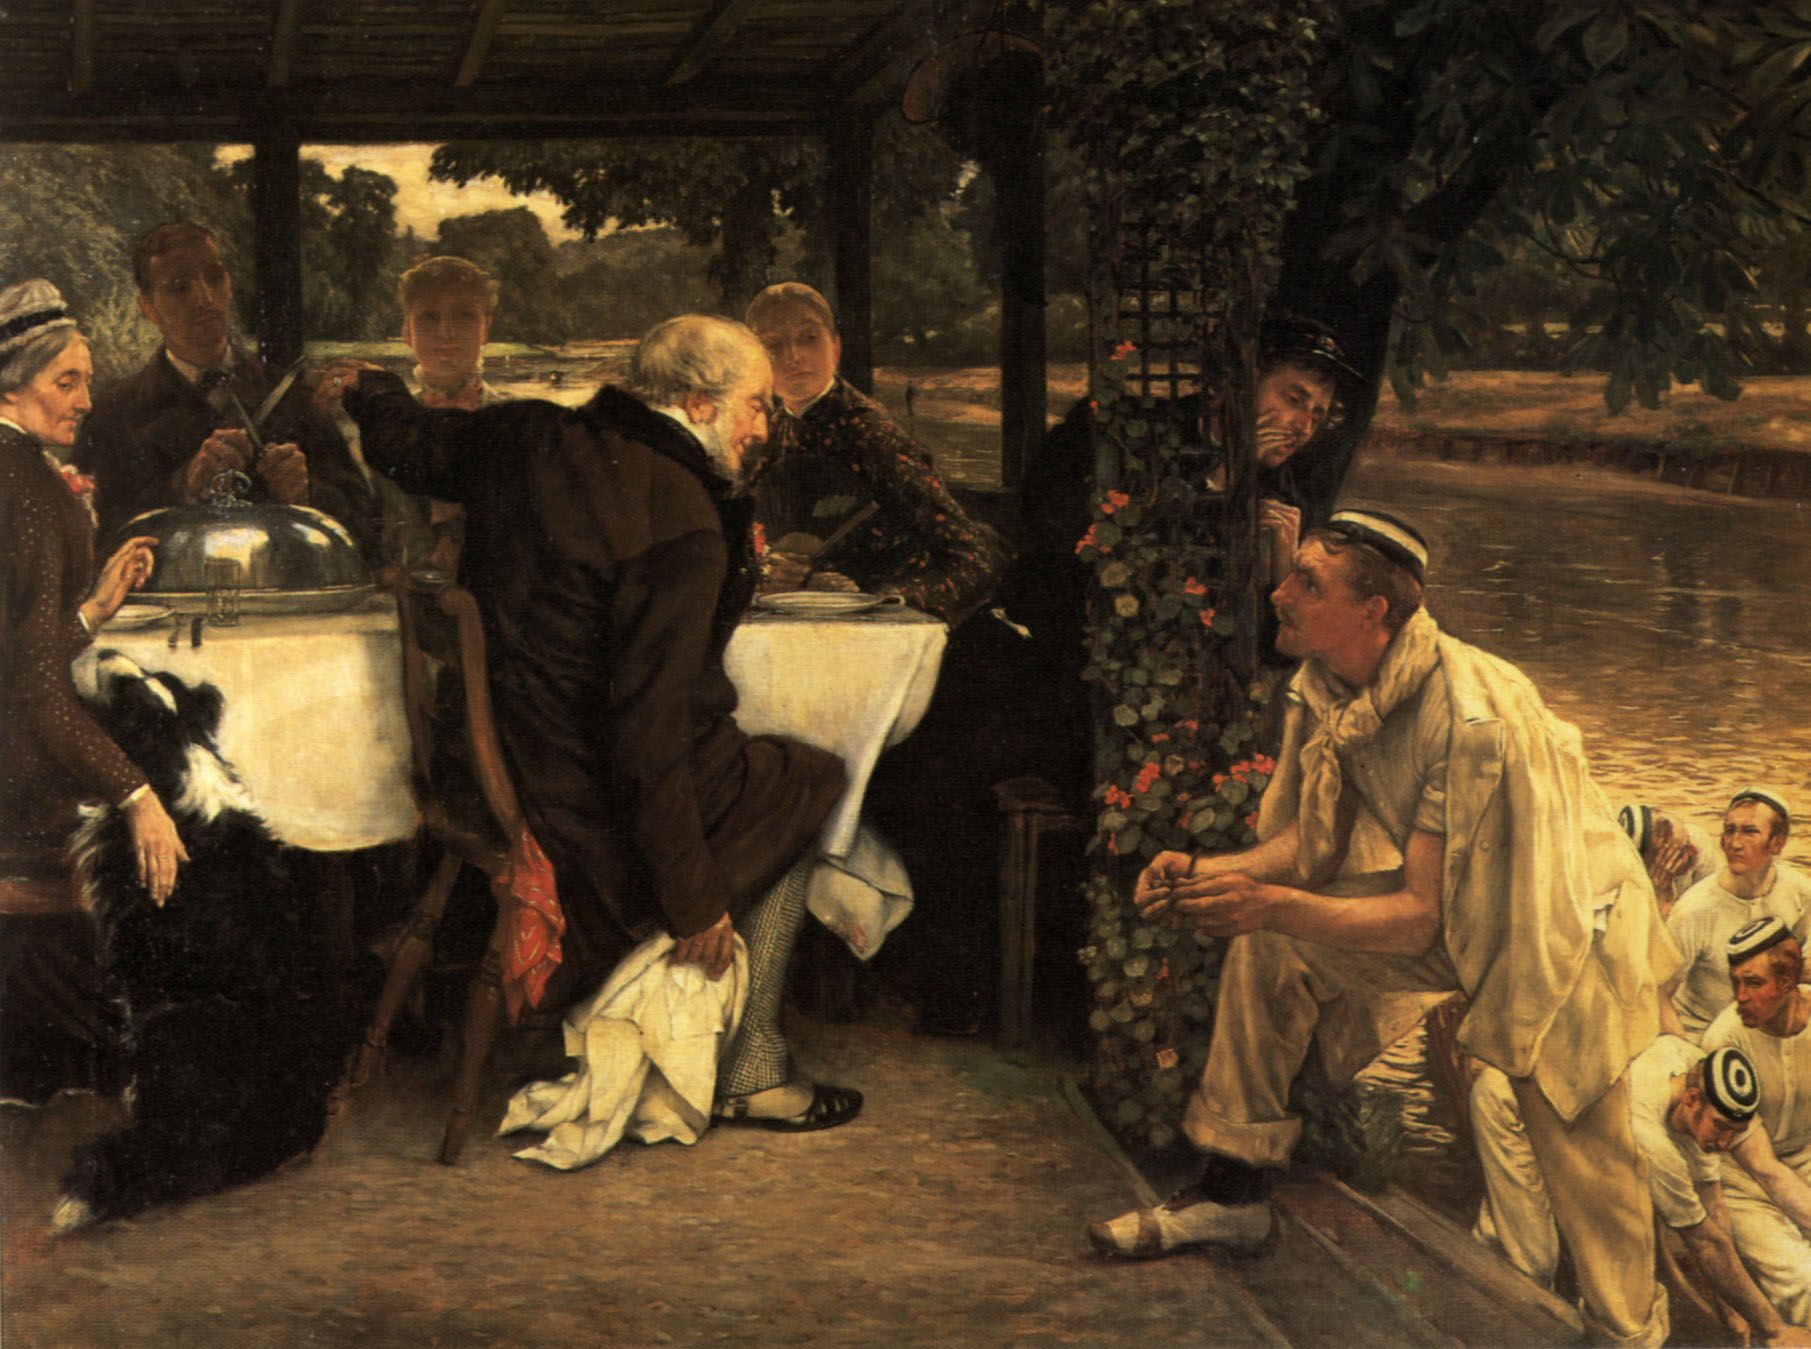 https://uploads3.wikiart.org/images/james-tissot/the-prodigal-son-in-modern-life-the-fatted-calf.jpg